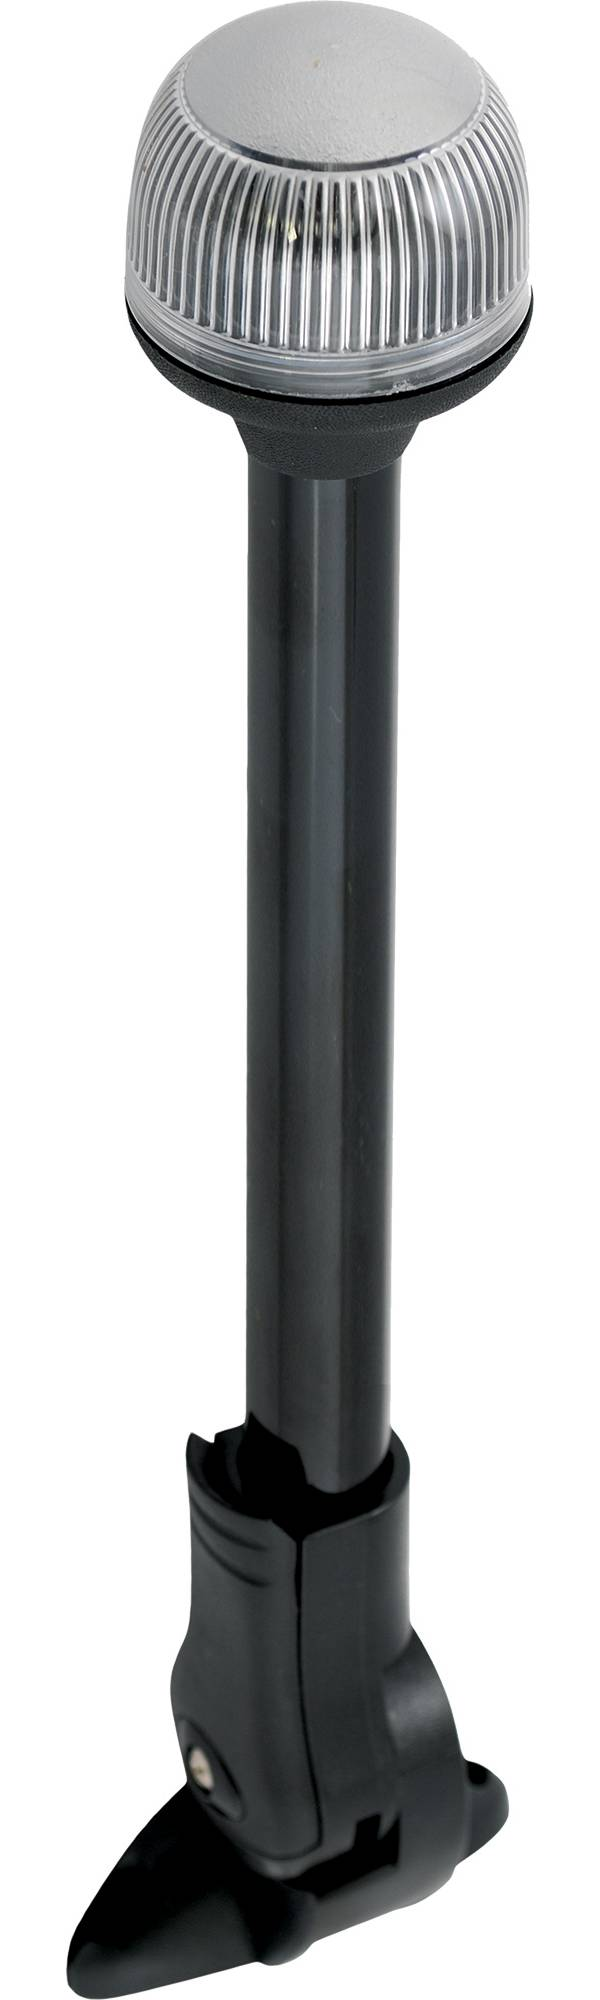 Attwood All-Around Stern Light with Fold Down Base product image